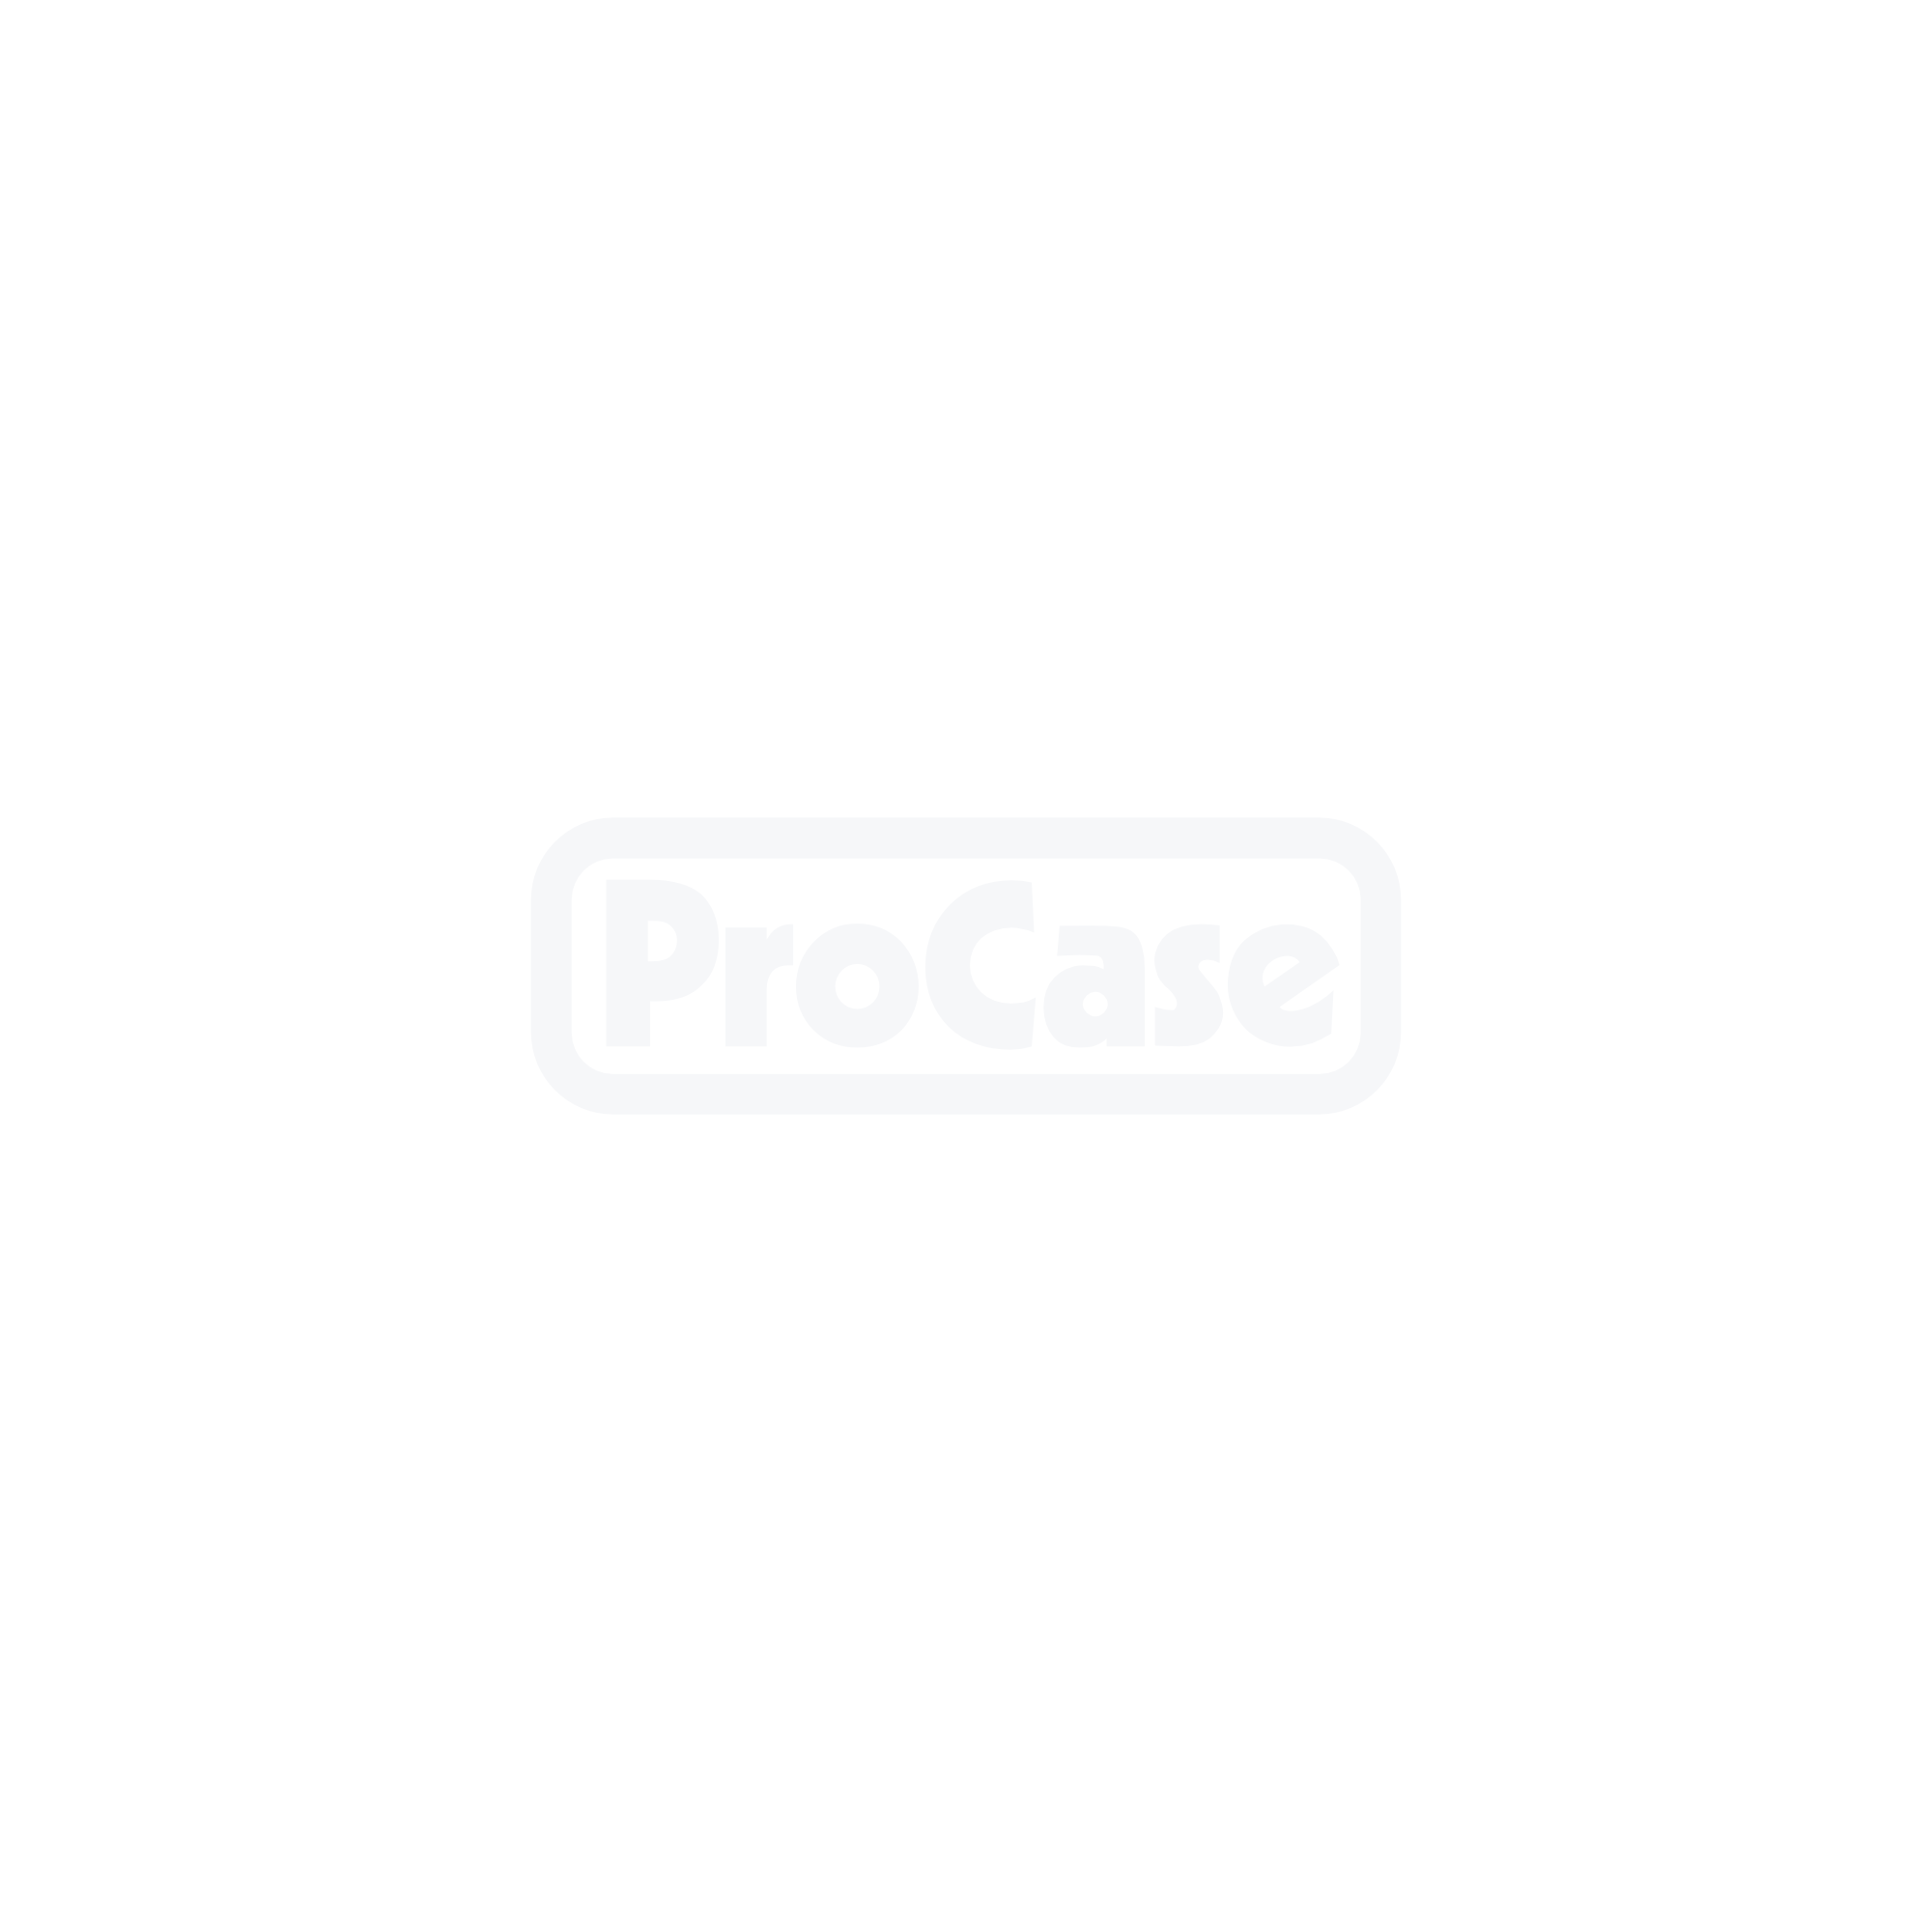 TFT Transportkoffer FLEX Case mit Trolley XXXL